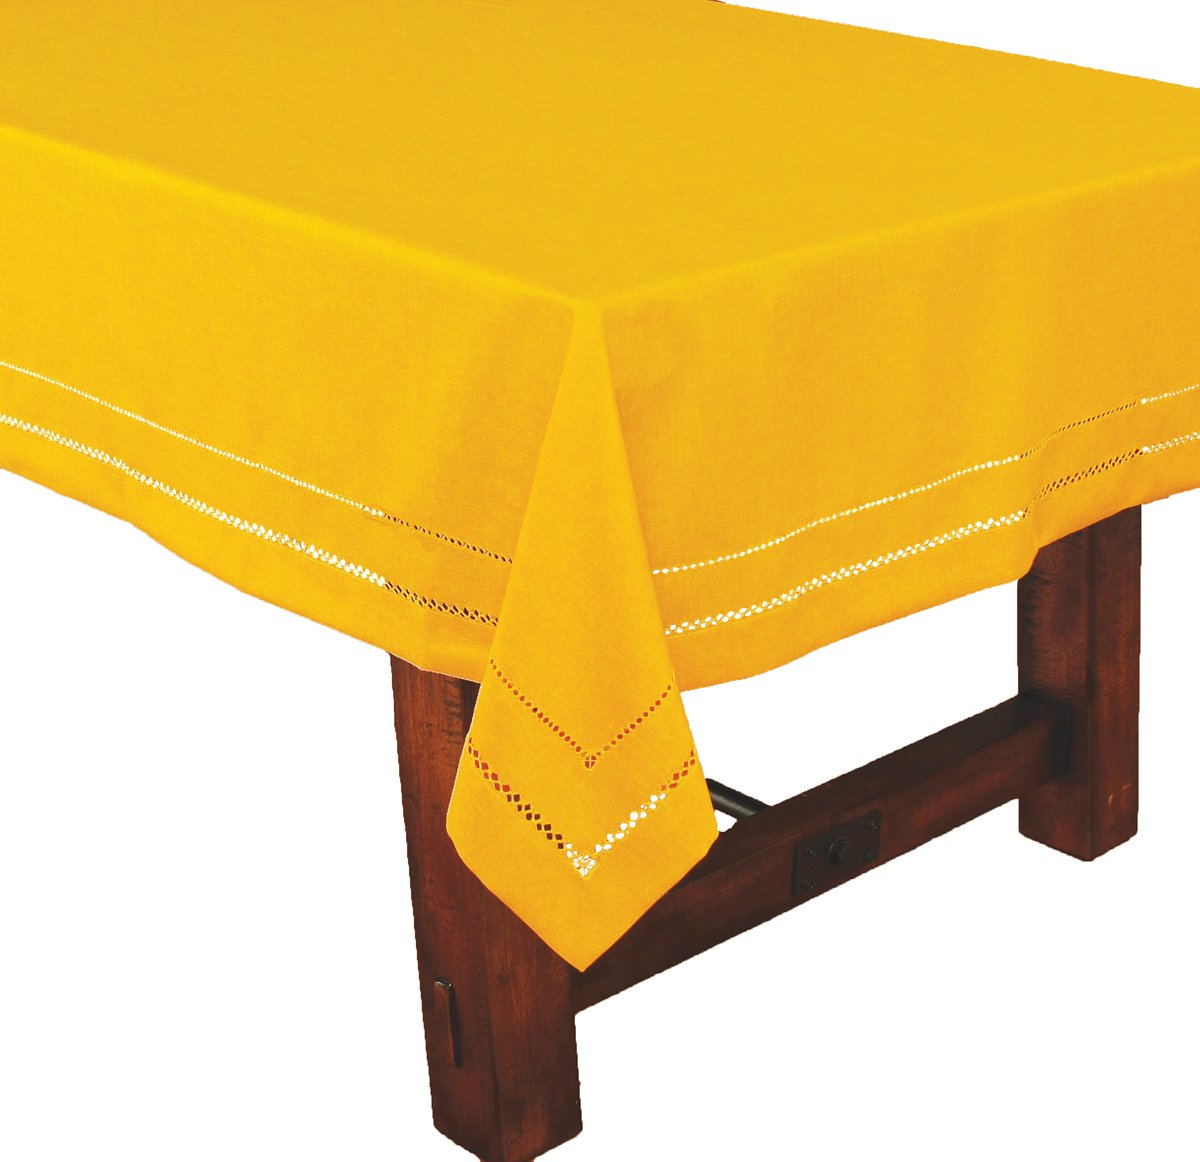 Xia Home Fashions Double Hemstitch Easy Care Tablecloth, 65 by 140-Inch, Gold by Xia Home Fashions